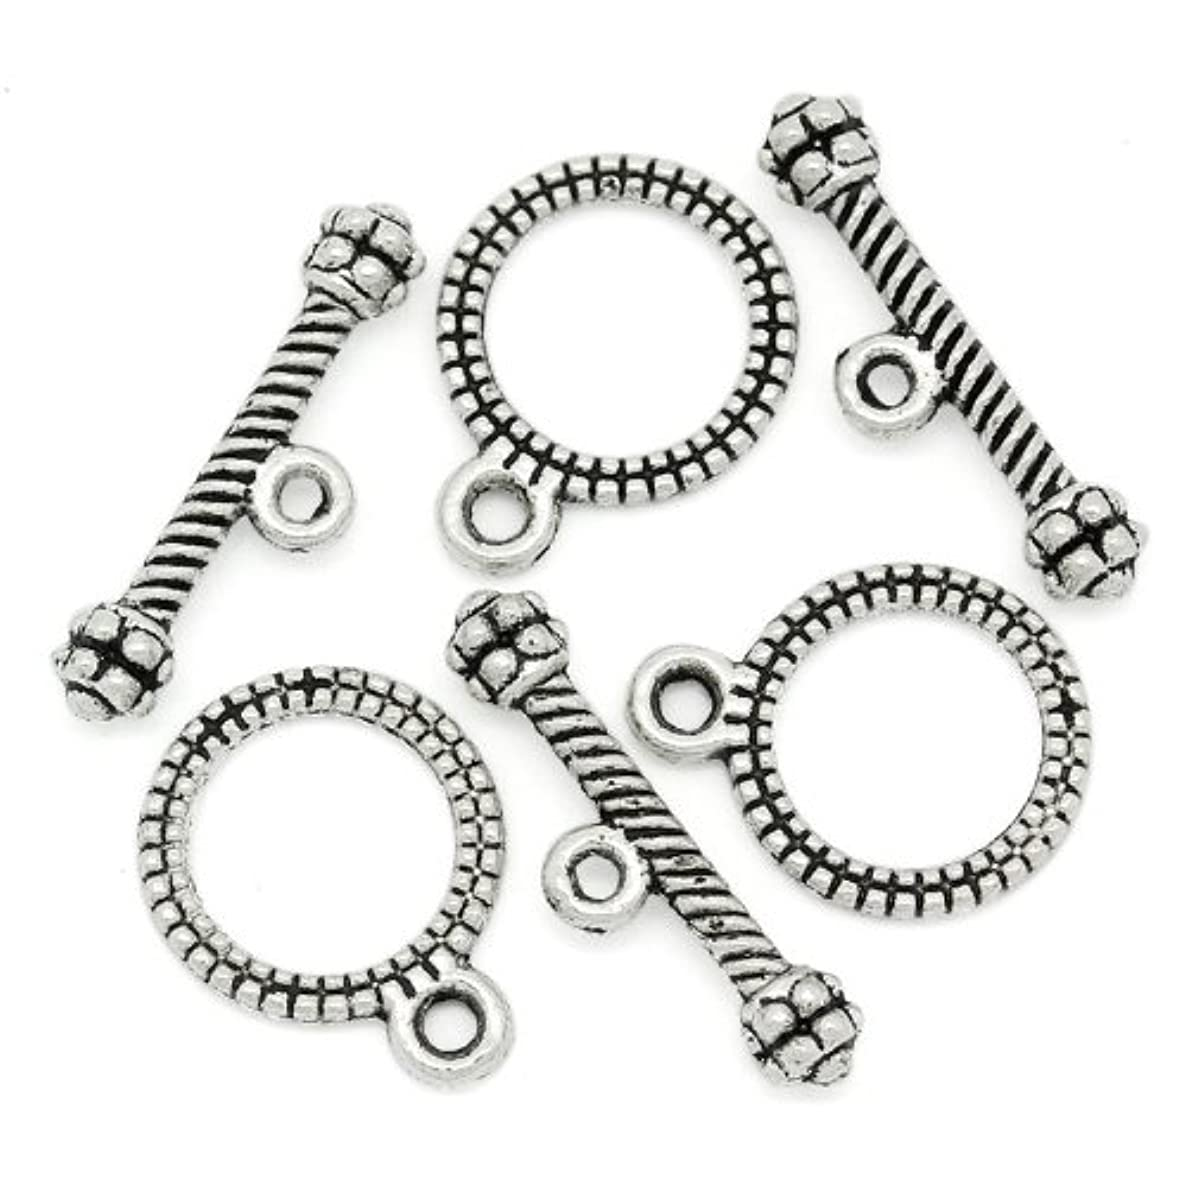 PEPPERLONELY Brand, 100 Sets Antiqued Silver Stripe Pattern Toggle Clasps